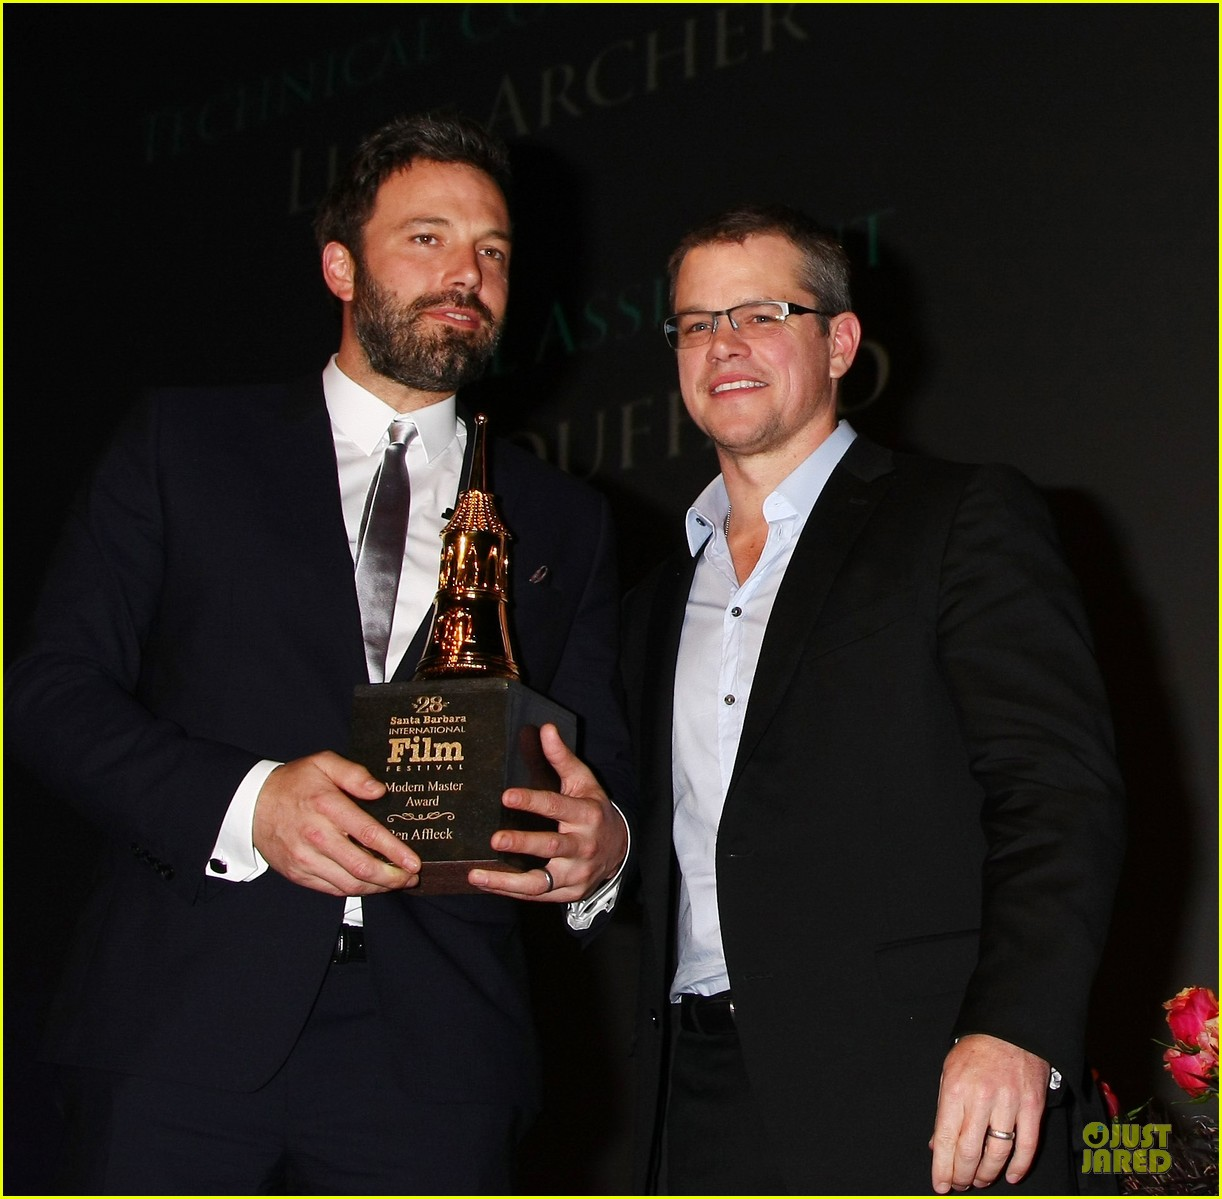 ben affleck santa barbara international film festival modern master award recipient 032798793